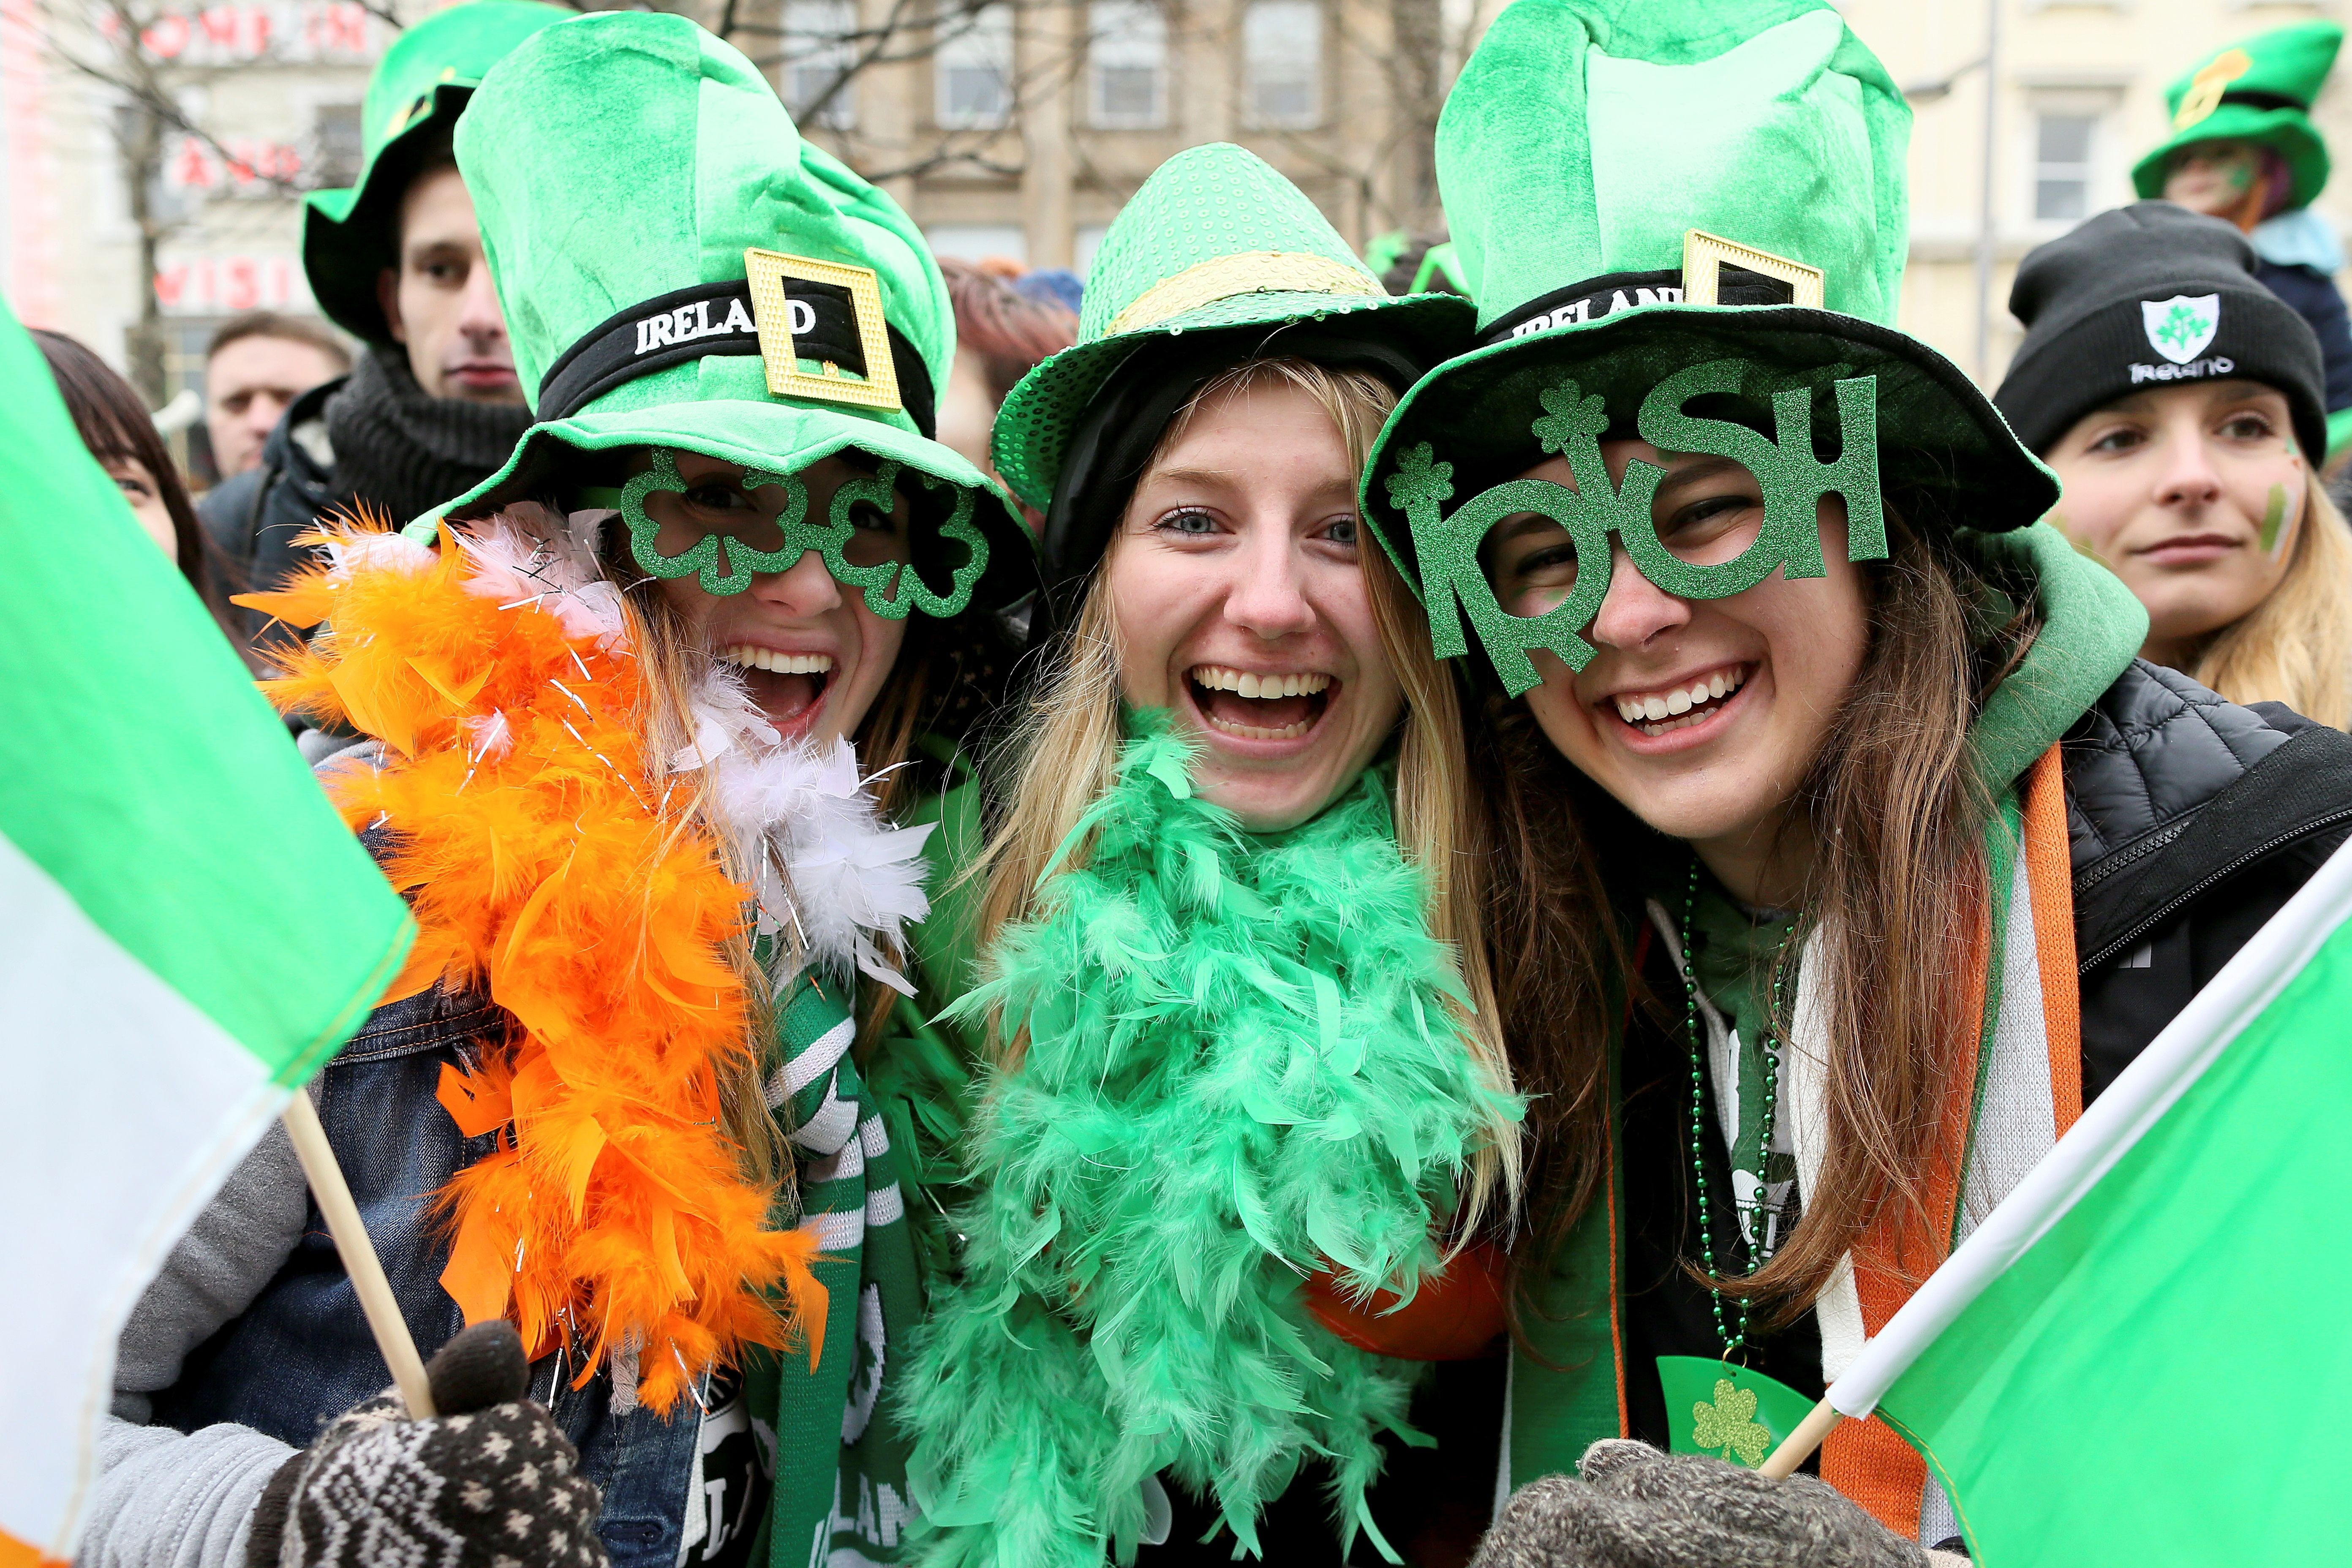 irish holidays - from st patrick's day to halloween | irishcentral